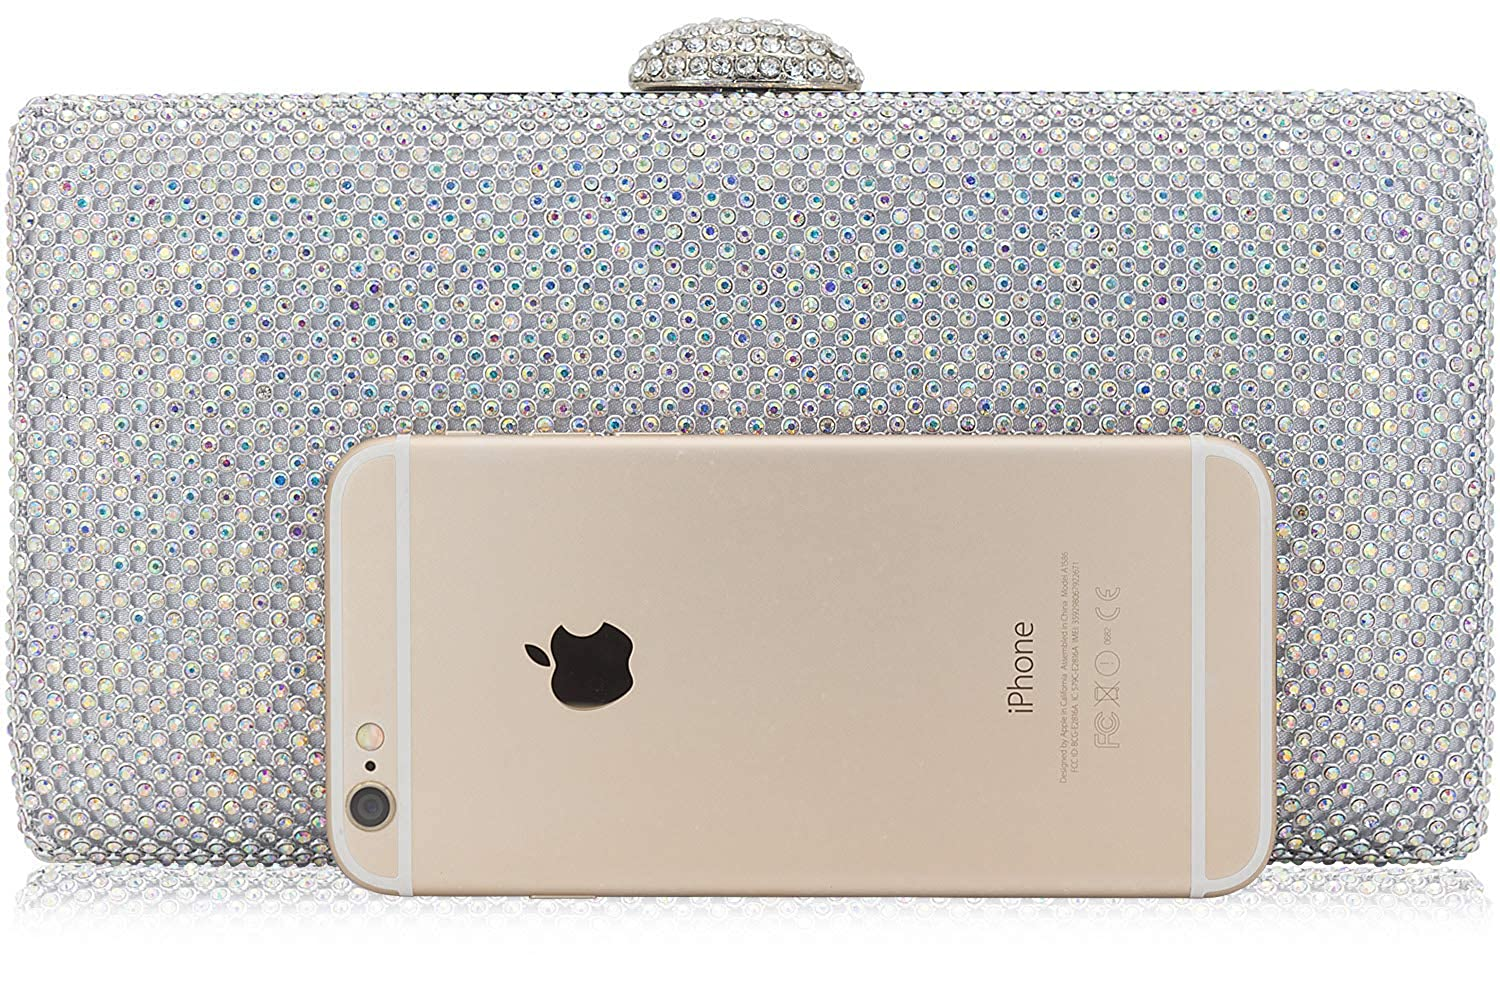 a772838fa7 Dexmay Large Rhinestone Crystal Clutch Evening Bag for Cocktail Prom Party  Women Clutch Purse AB Silver: Handbags: Amazon.com